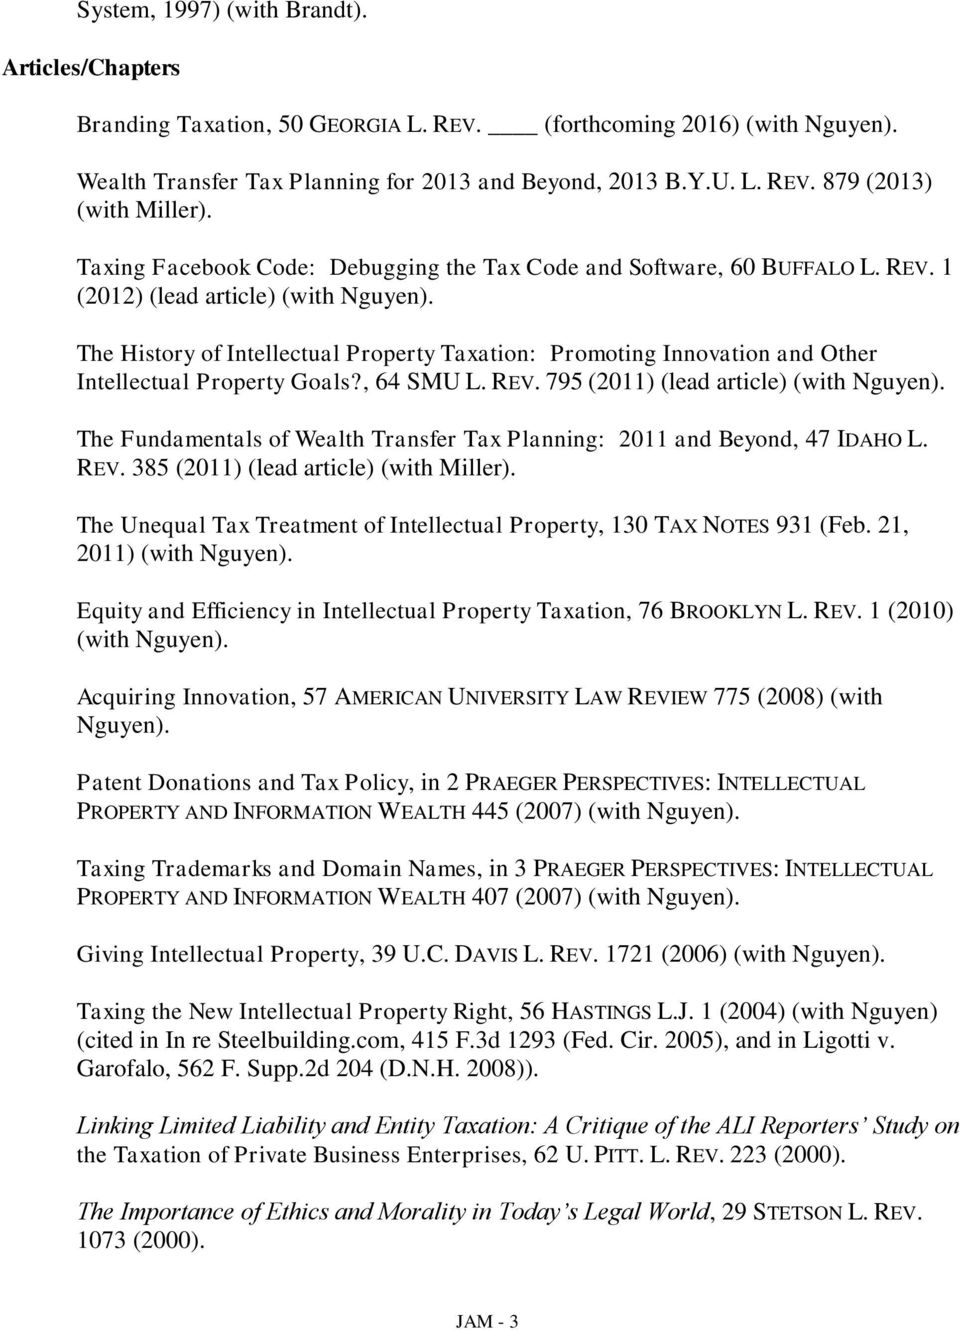 The History of Intellectual Property Taxation: Promoting Innovation and Other Intellectual Property Goals?, 64 SMU L. REV. 795 (2011) (lead article) (with Nguyen).